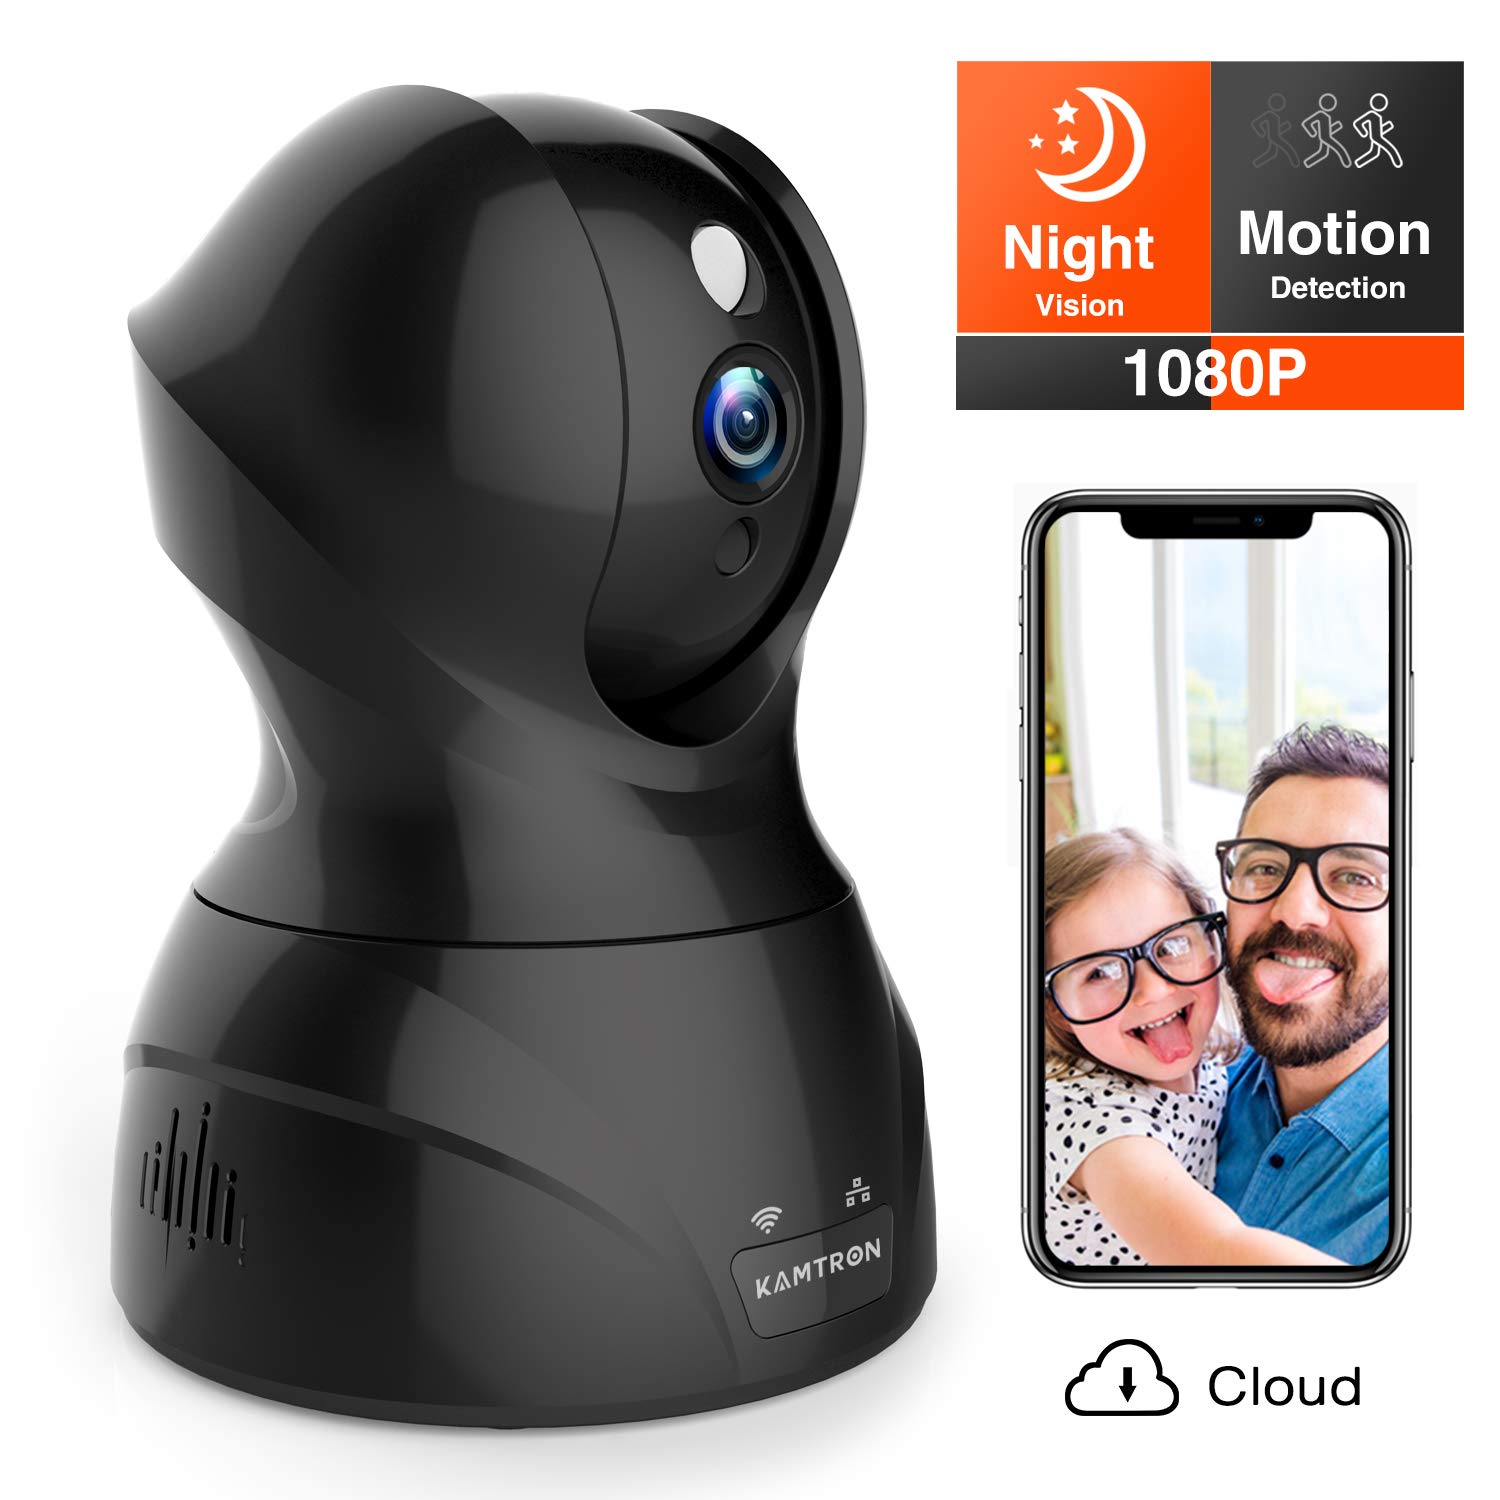 Security Camera 1080P WiFi Dog Pet Camera - KAMTRON Wireless Indoor Pan/Tilt/Zoom Home Camera Baby Monitor IP Camera with Motion Detection Two-Way Audio, Night Vision - Cloud Storage